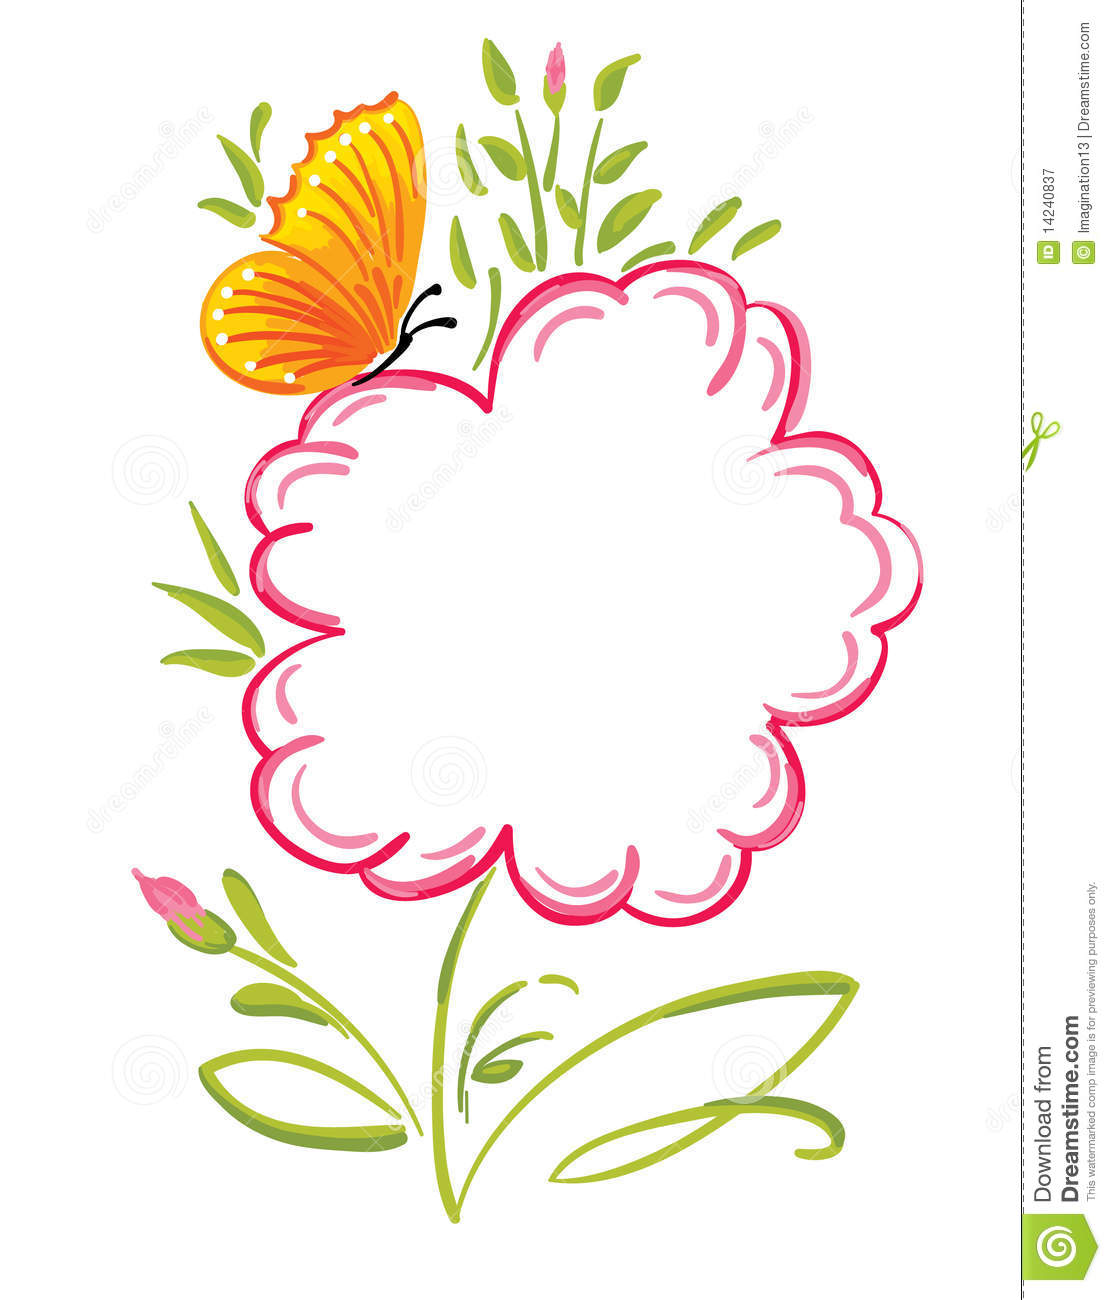 Flower Greetings Royalty Free Stock Photography - Image: 14240837